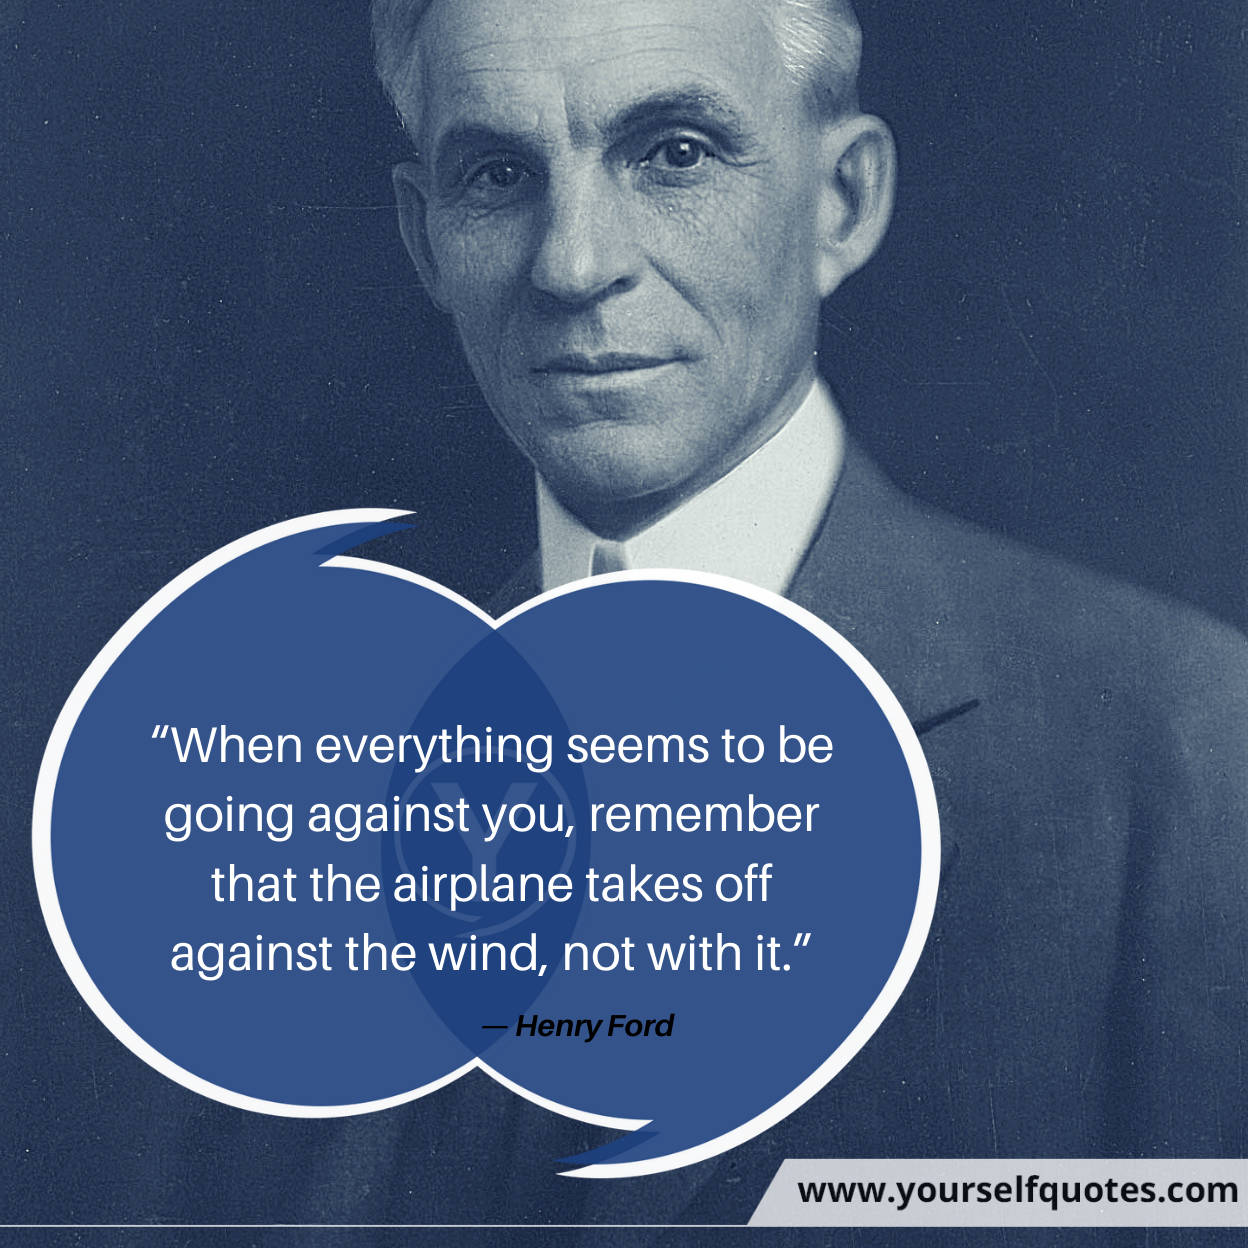 Henry Ford Quotation Images